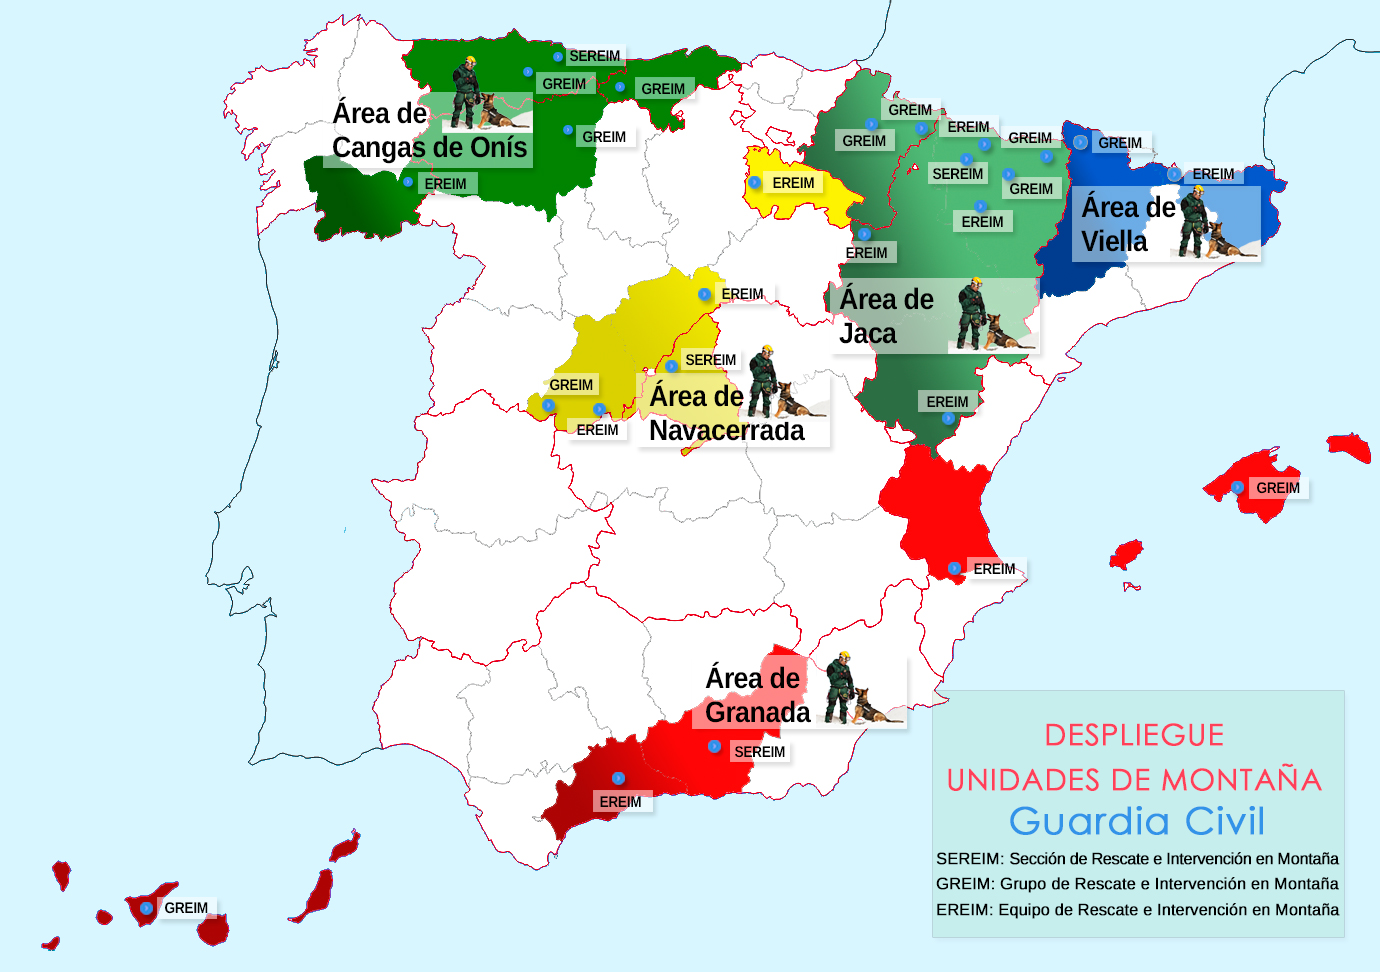 Mapa despliegue Unidades de Monataña de la Guardia Civil